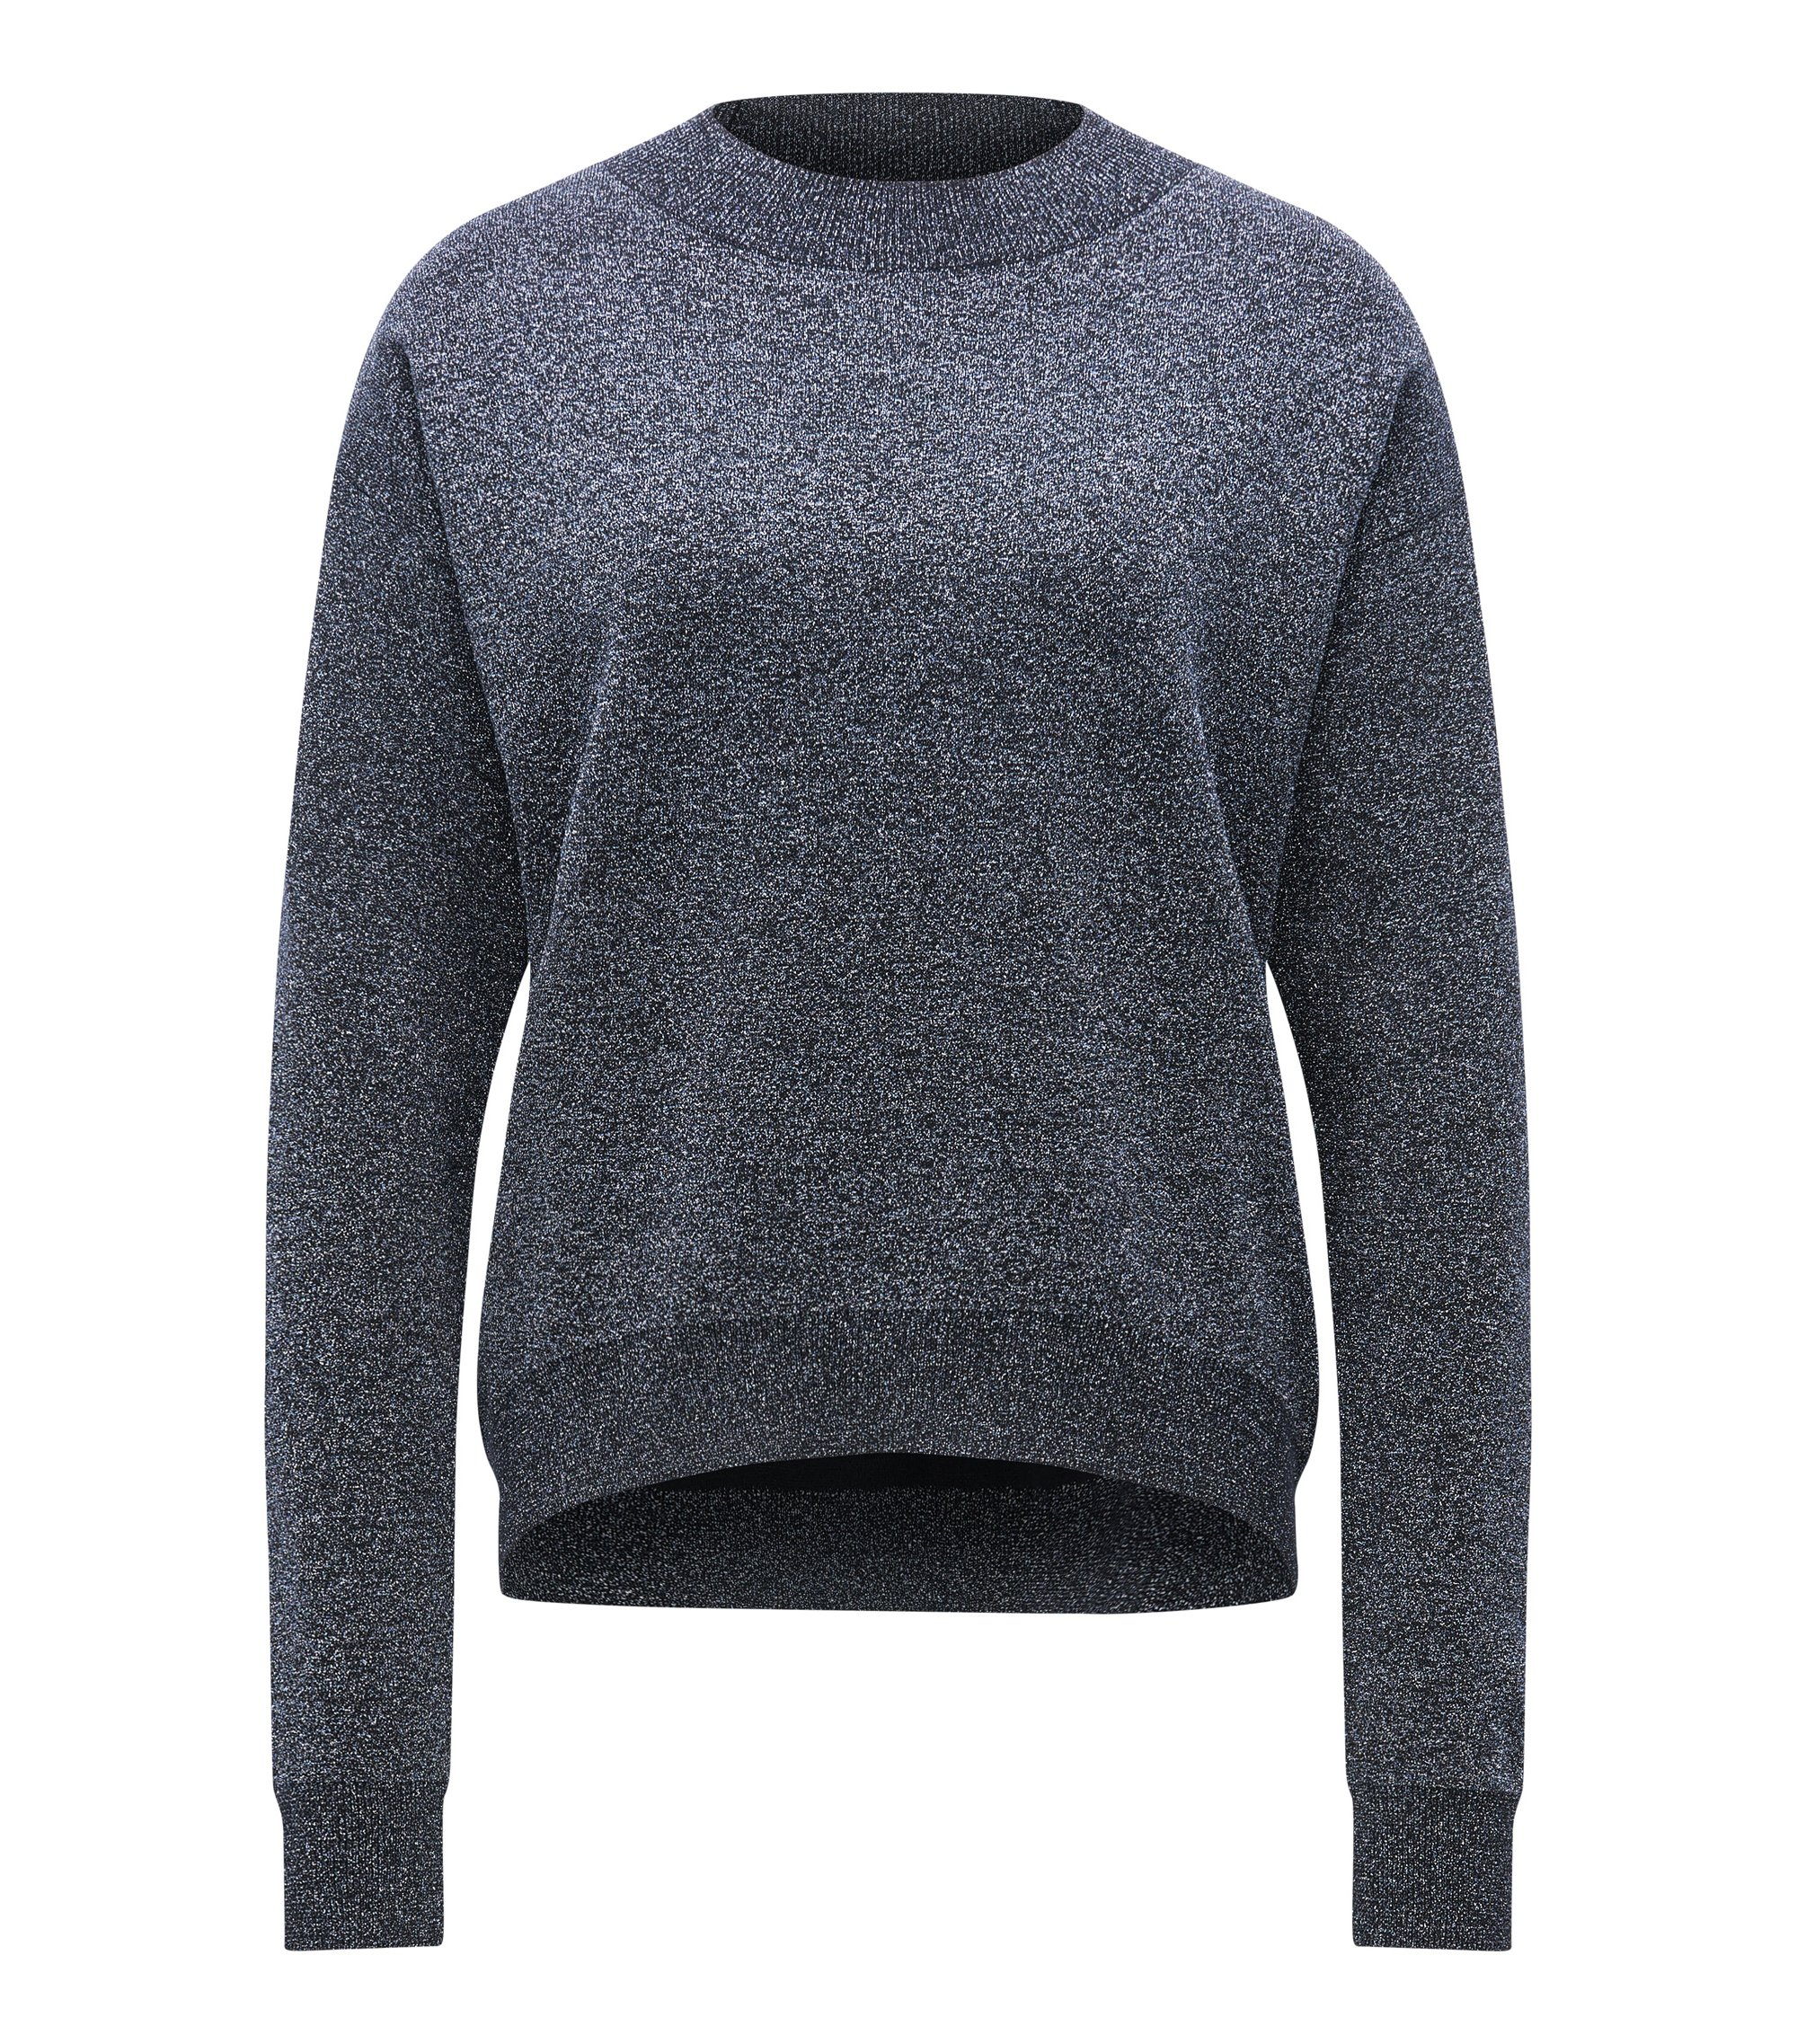 Matallicized Virgin Wool Sweater | Funday, Open Blue